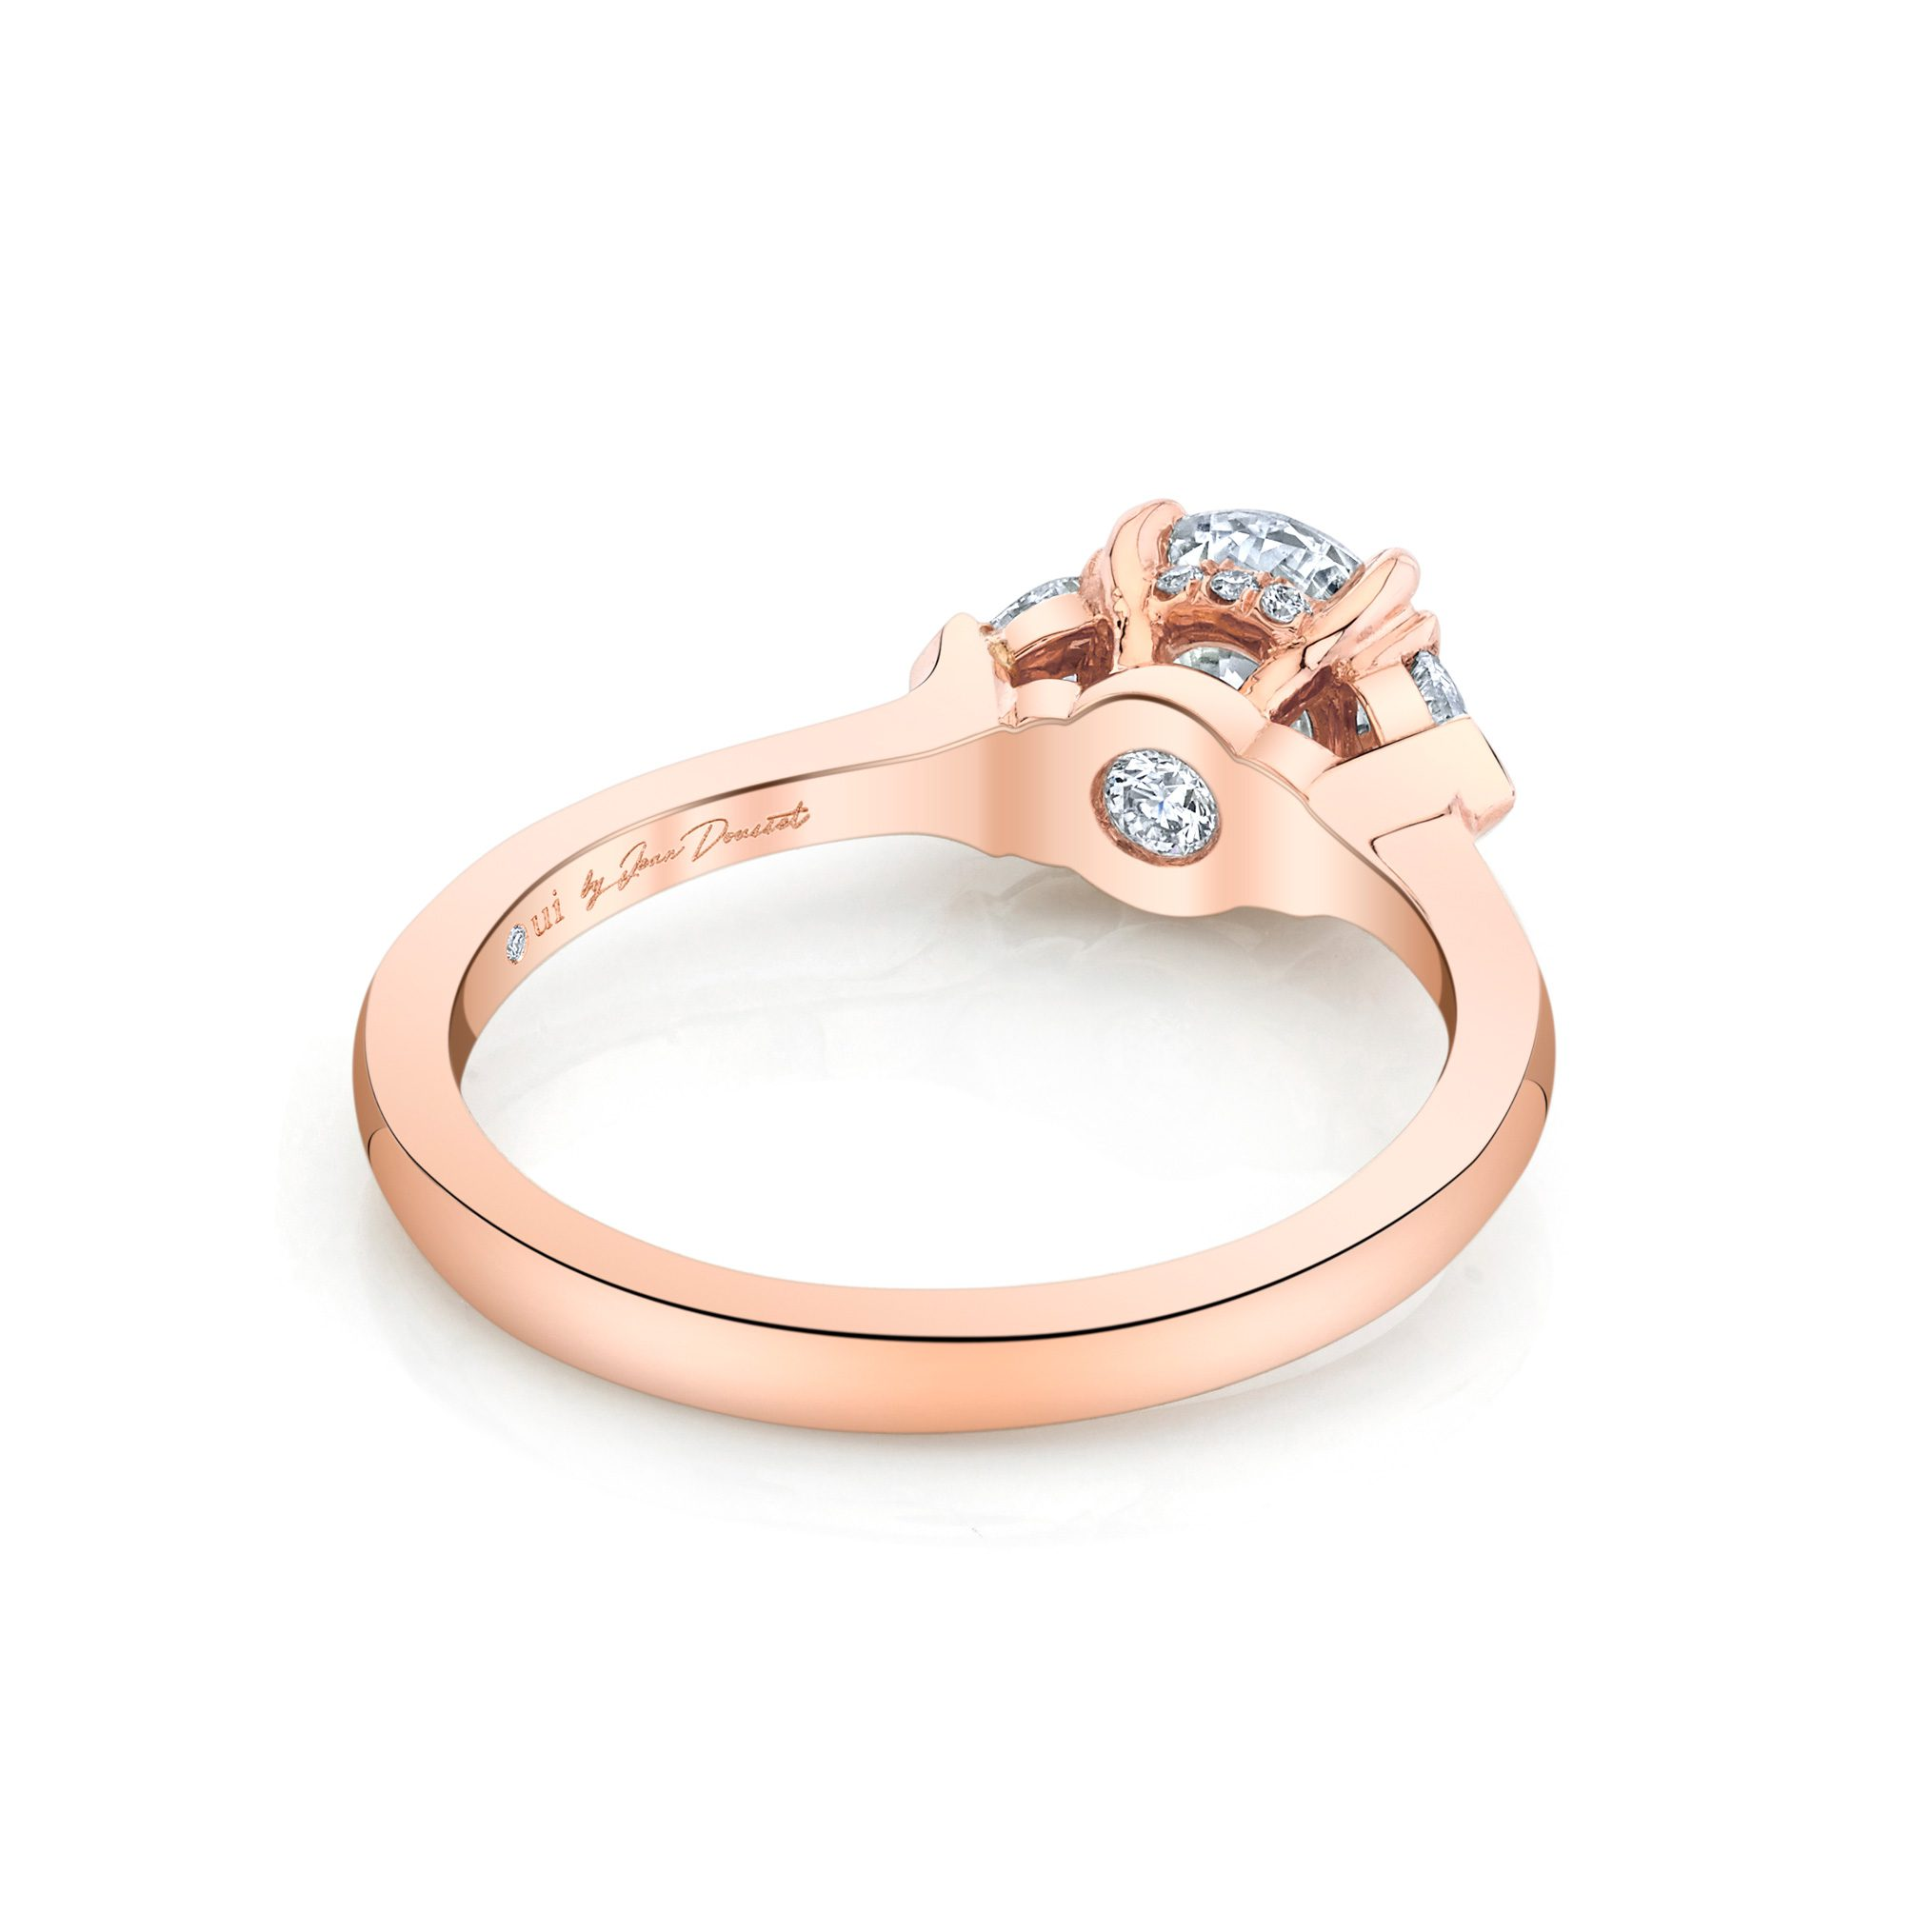 Claire Round Brilliant Three Stone Engagement Ring with heart-shaped diamond side stones in 18k Rose Gold Back View by Oui by Jean Dousset